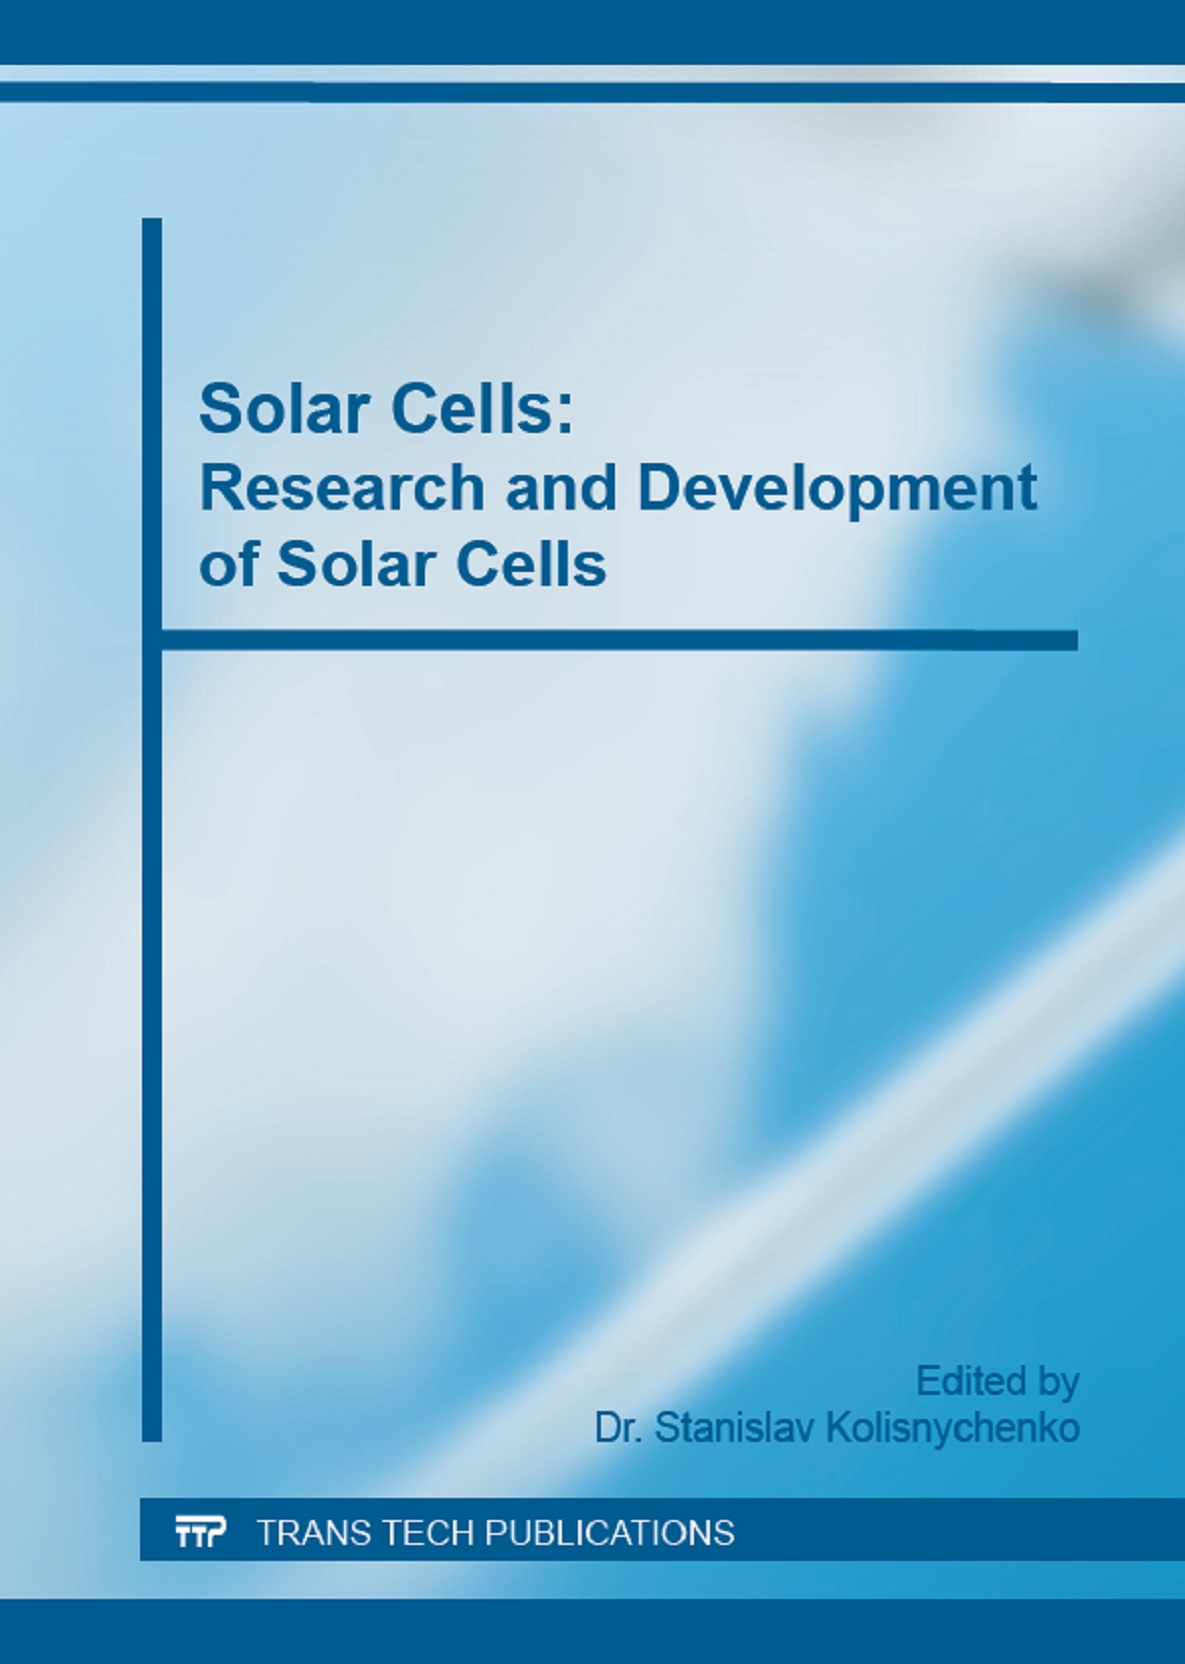 Solar Cells: Research and Development of Solar Cells